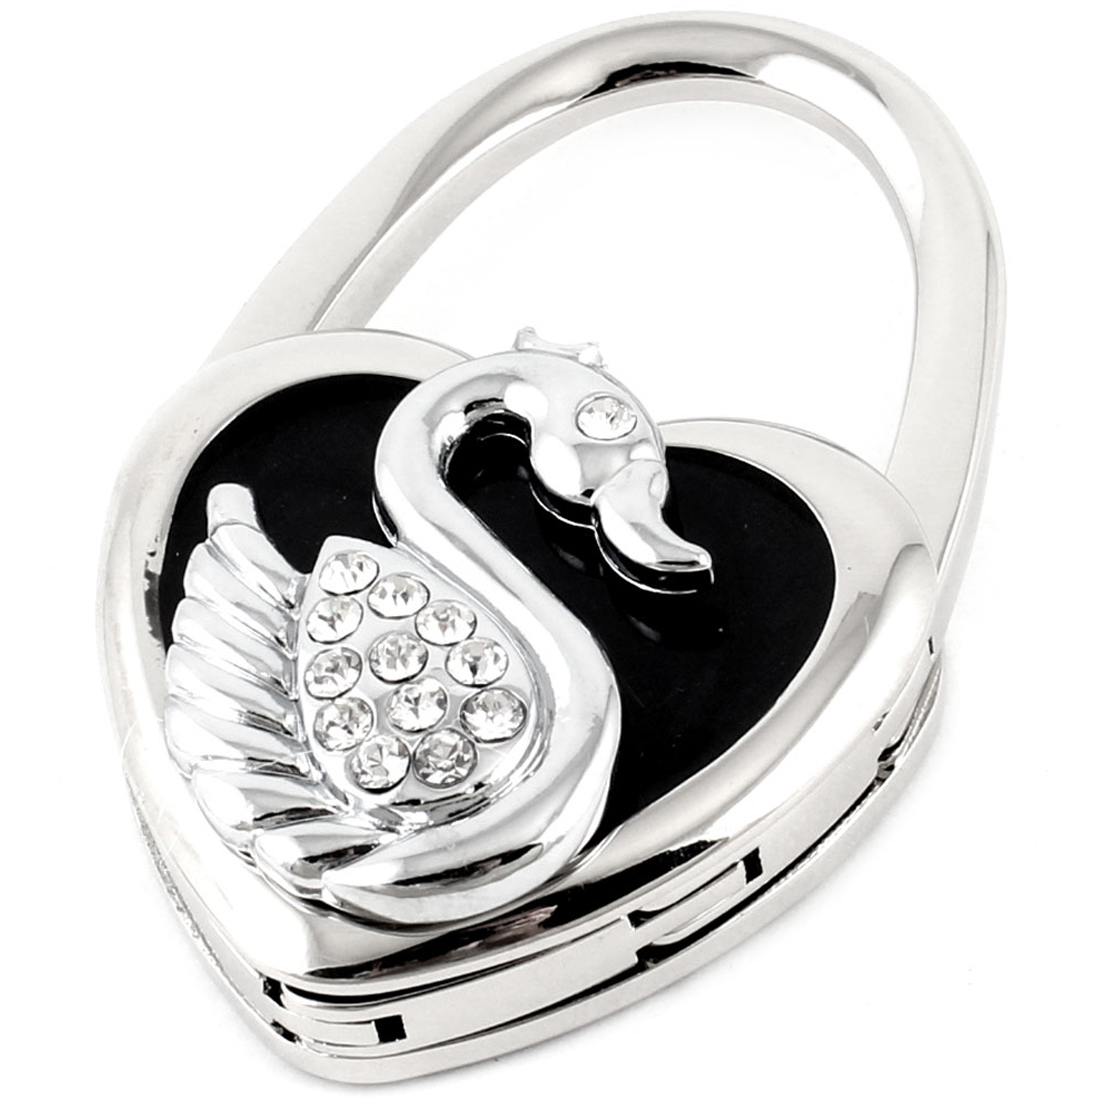 Rhinestones Goose Heart Design Handbag Foldable Table Hook Black Silver Tone